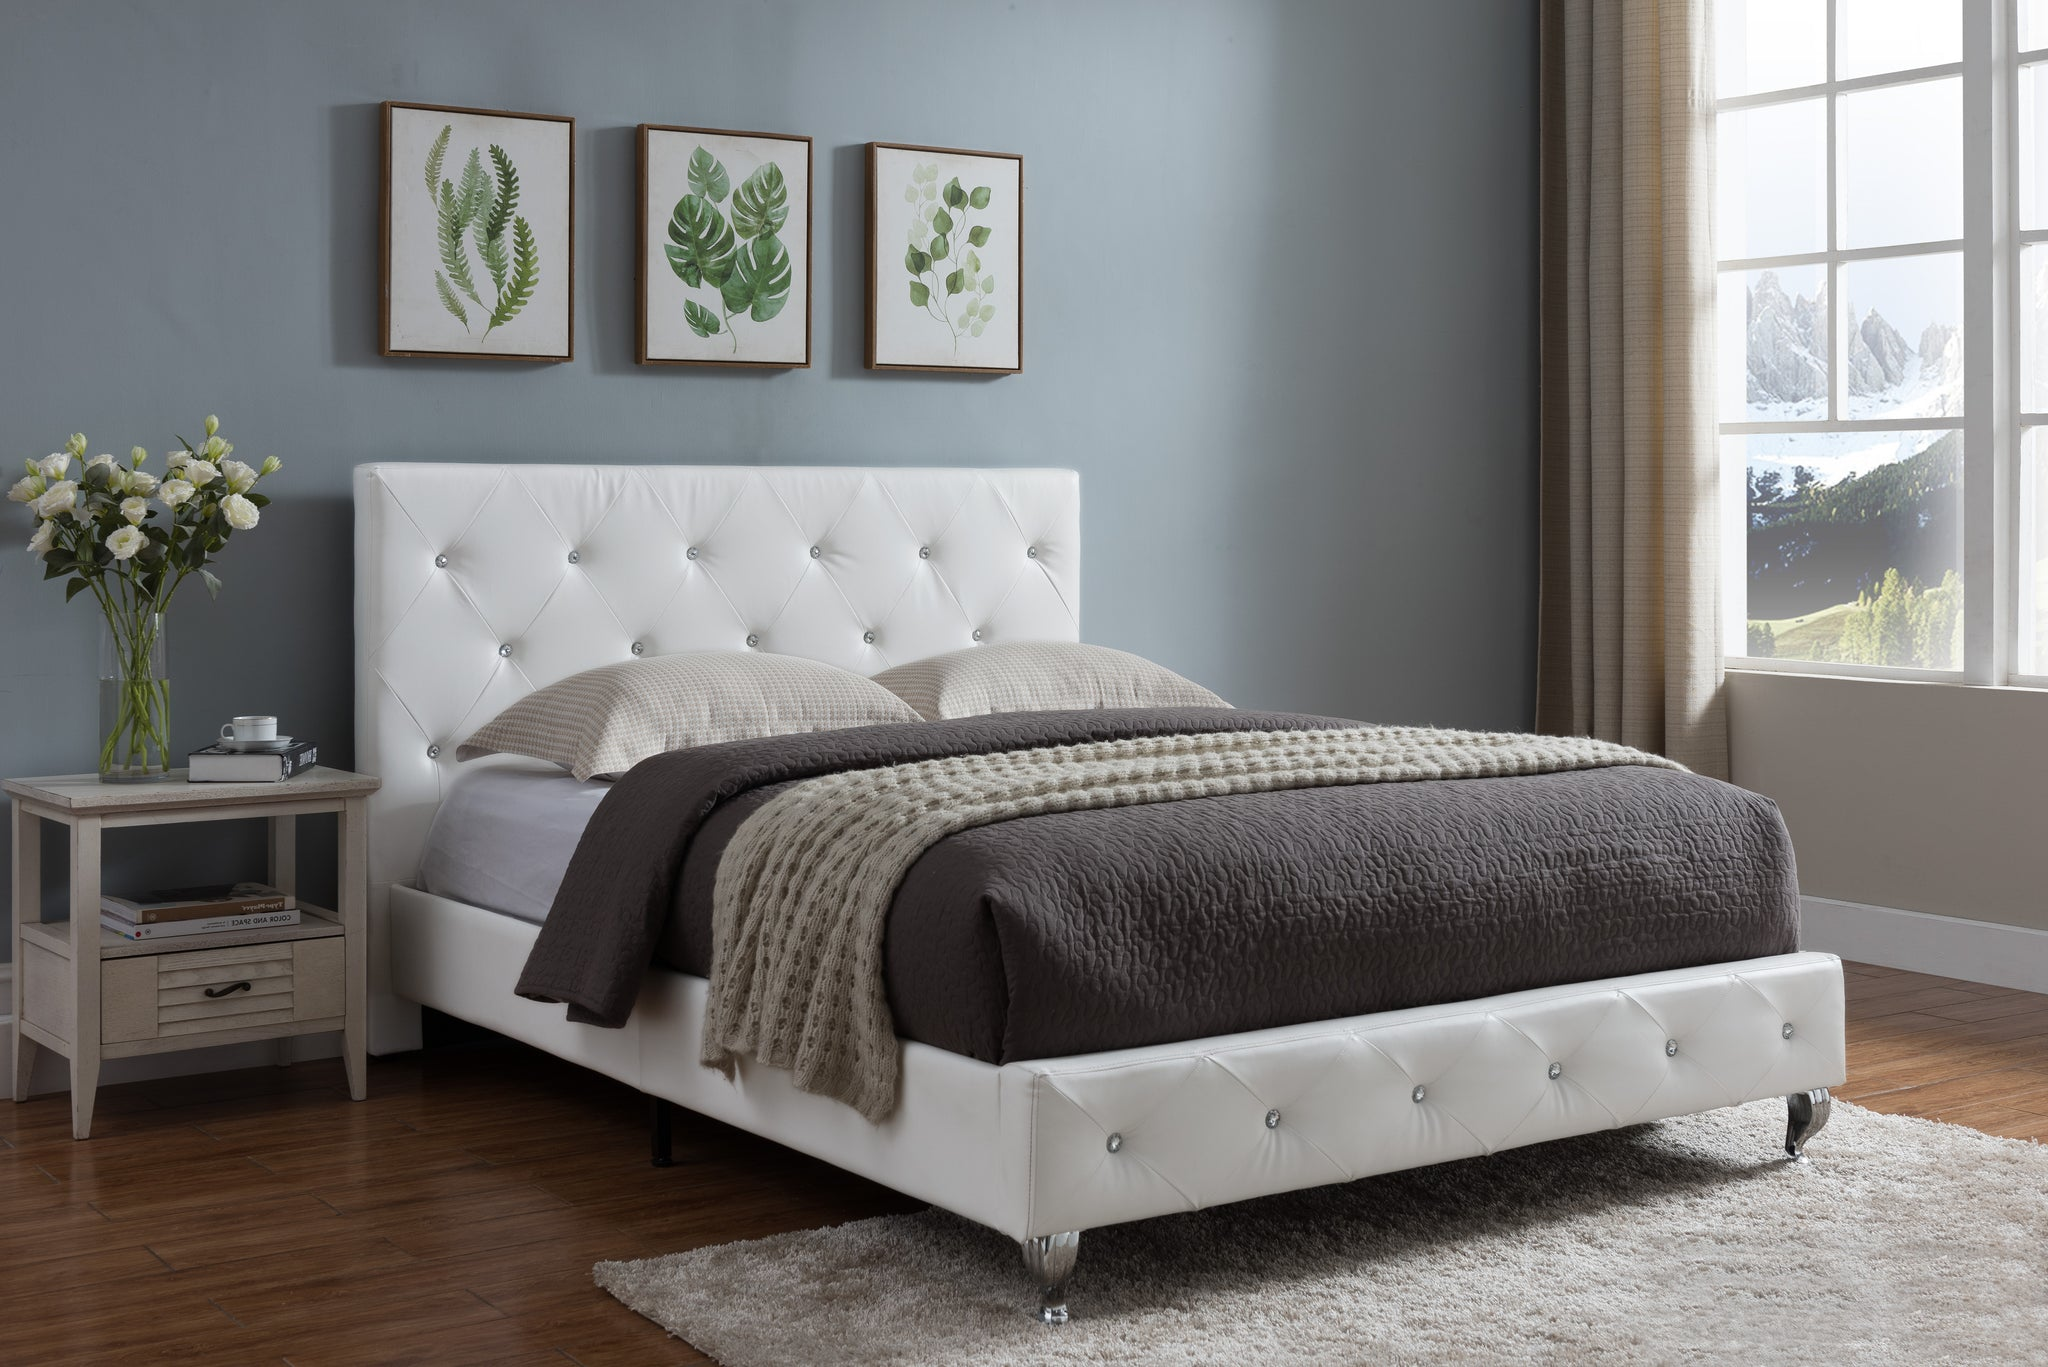 Cora Upholstered Platform Bed White Faux Leather Queen